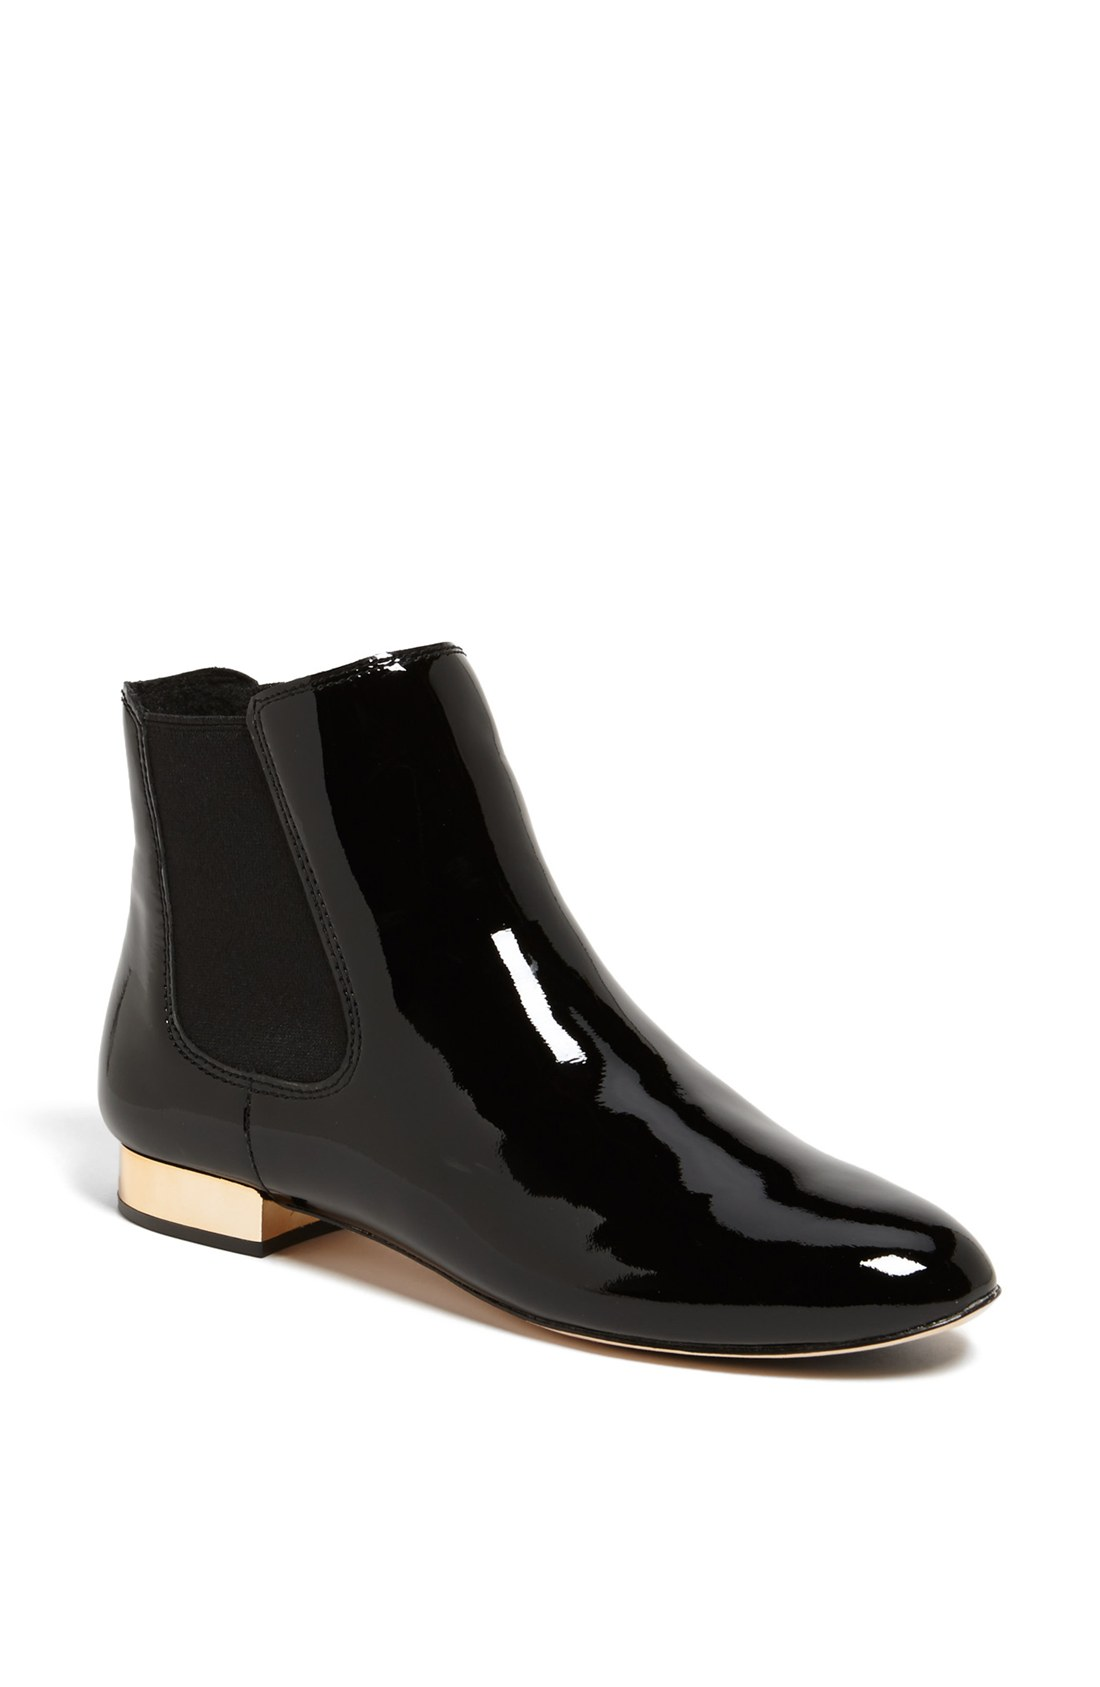 vc signature himena patent leather chelsea boot in black